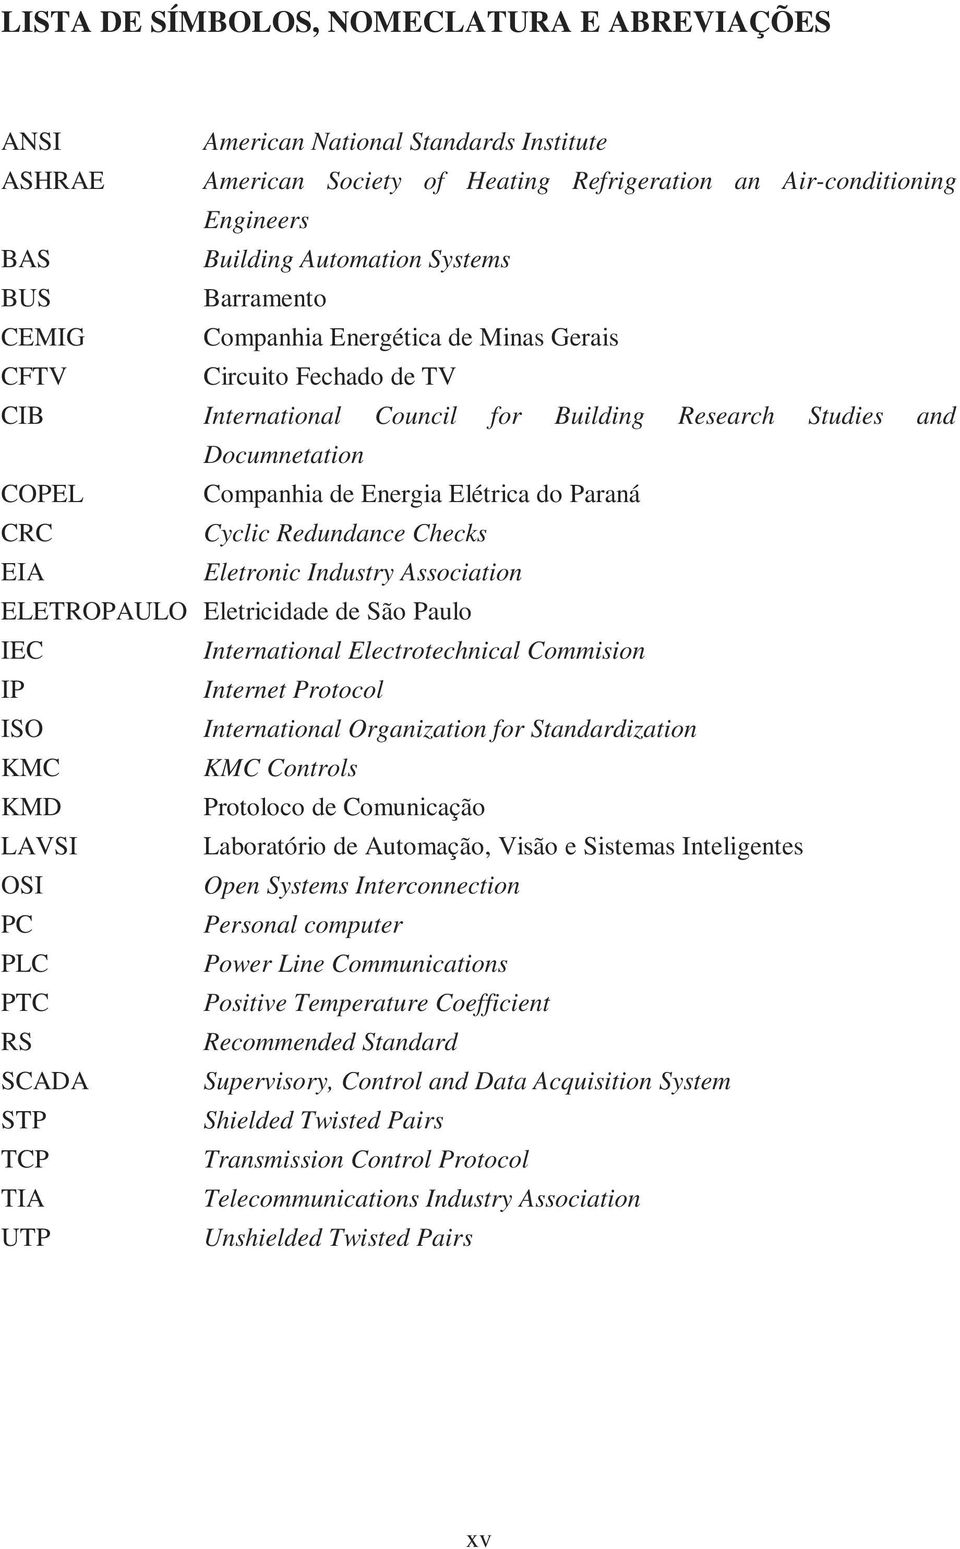 Paraná CRC Cyclic Redundance Checks EIA Eletronic Industry Association ELETROPAULO Eletricidade de São Paulo IEC International Electrotechnical Commision IP Internet Protocol ISO International